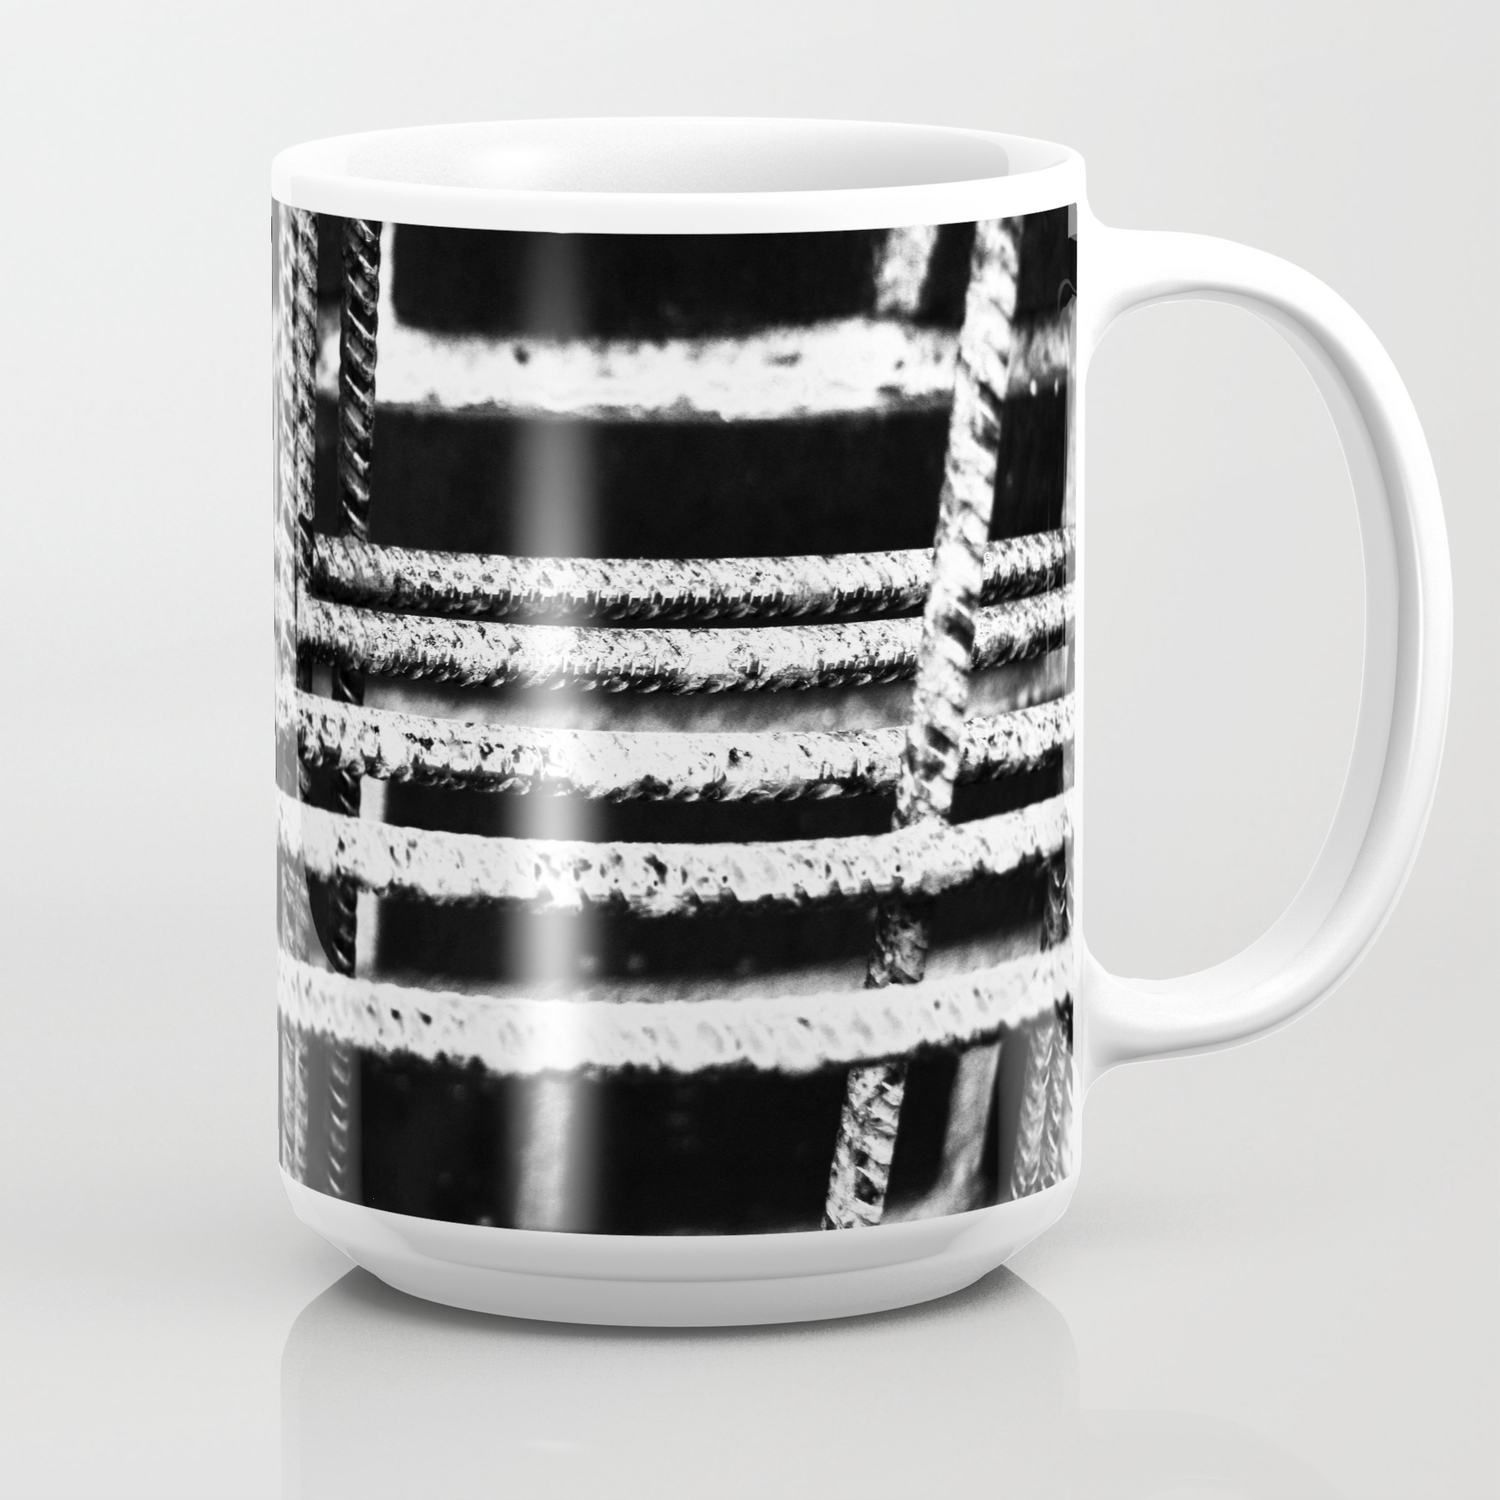 Rebar And Brick - Industrial Abstract Coffee Mug with Coffee Sign With Rebar Wall Decor (Image 15 of 30)